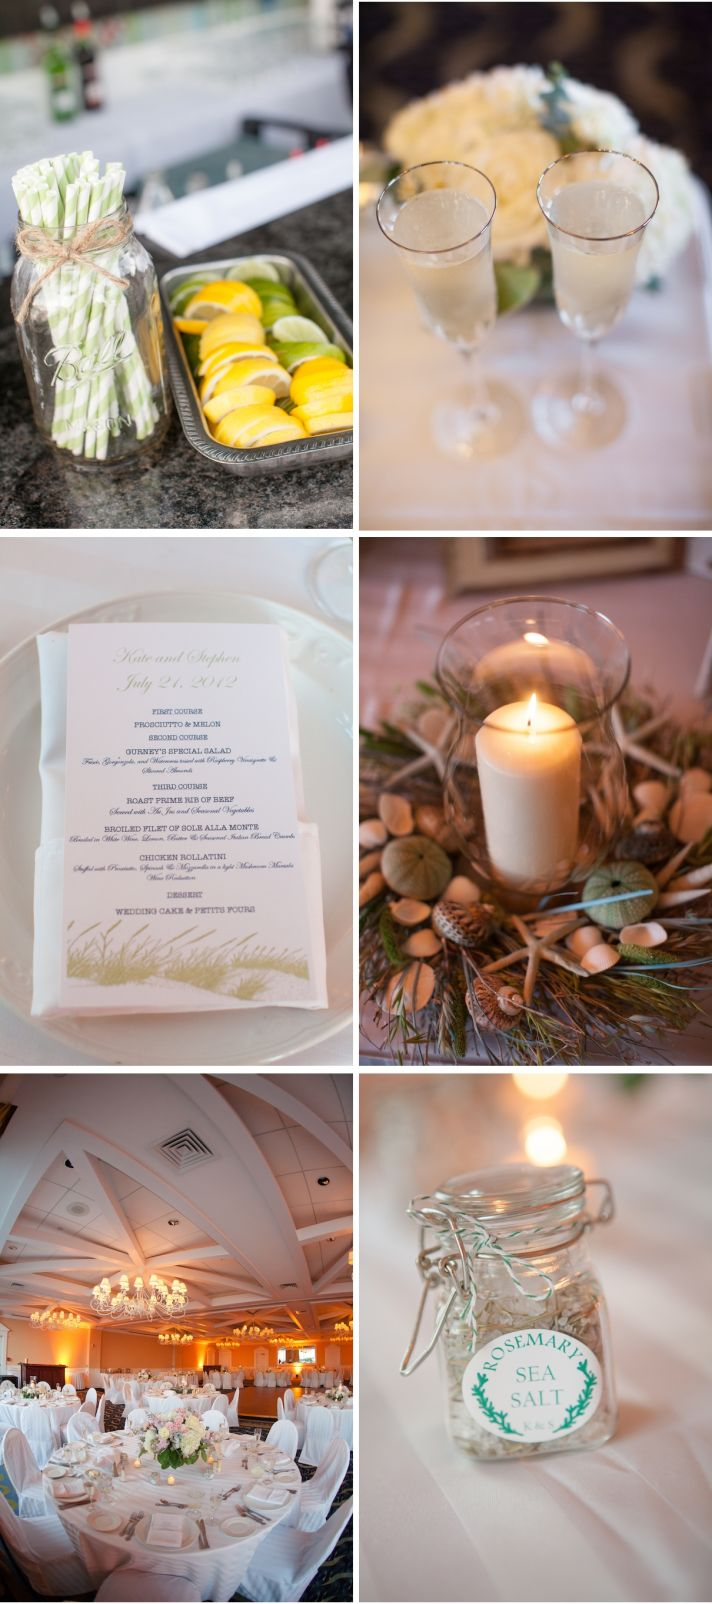 Real Wedding Long Island Throo Williams Photography by Verdi Reception Food Detail